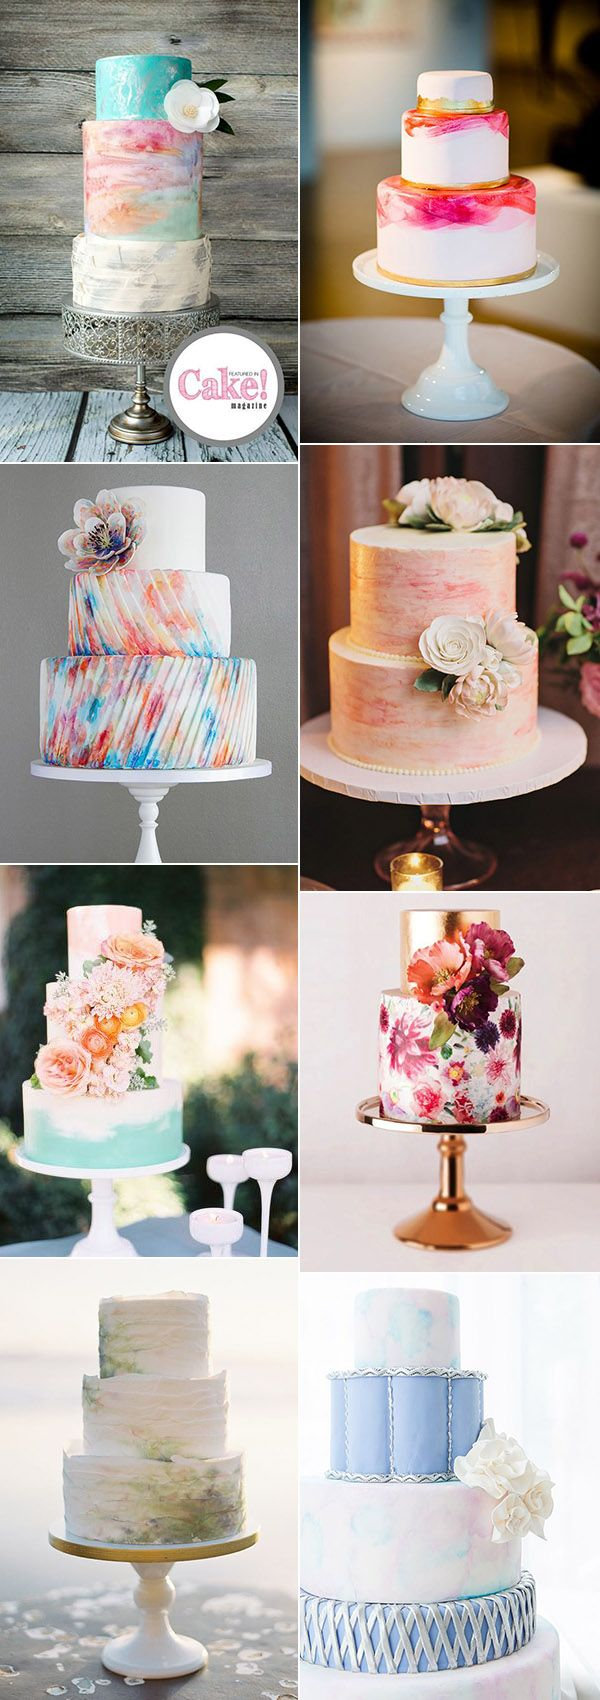 glamorous watercolor wedding cakes for romantic wedding ideas